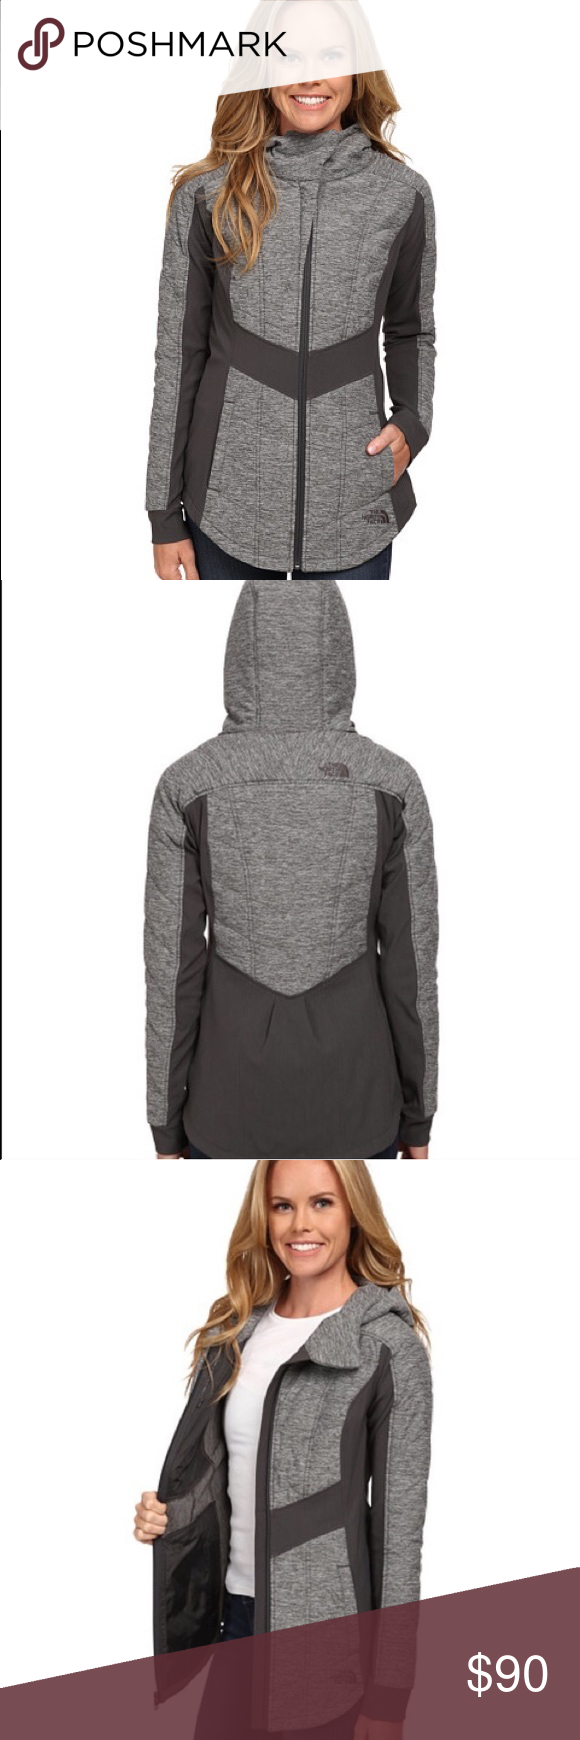 9cd36264e Women's North Face Pseudio Jacket After yoga, sink into this lightly ...